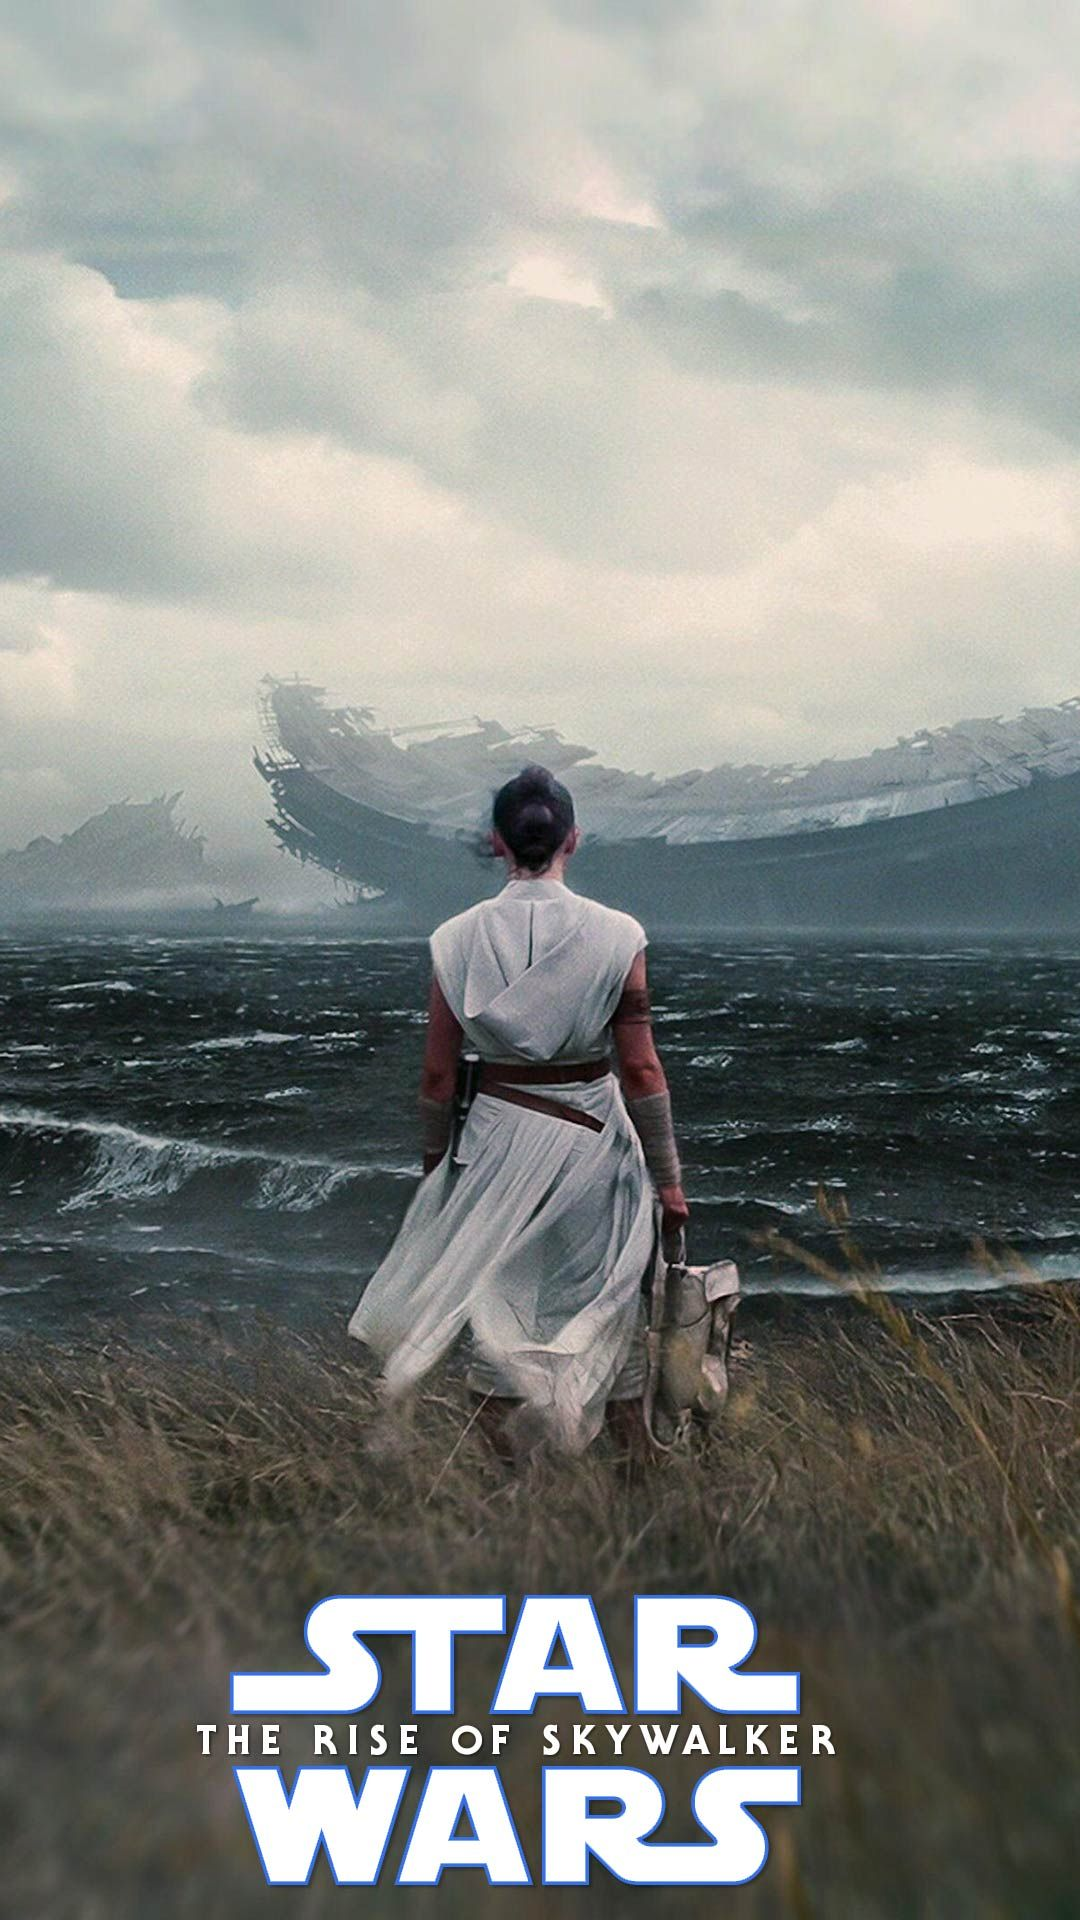 10 Star Wars The Rise Of Skywalker Wallpaper Hd Phone Backgrounds Iphone Android Charact Star Wars Wallpaper Iphone Star Wars Background Star Wars Wallpaper